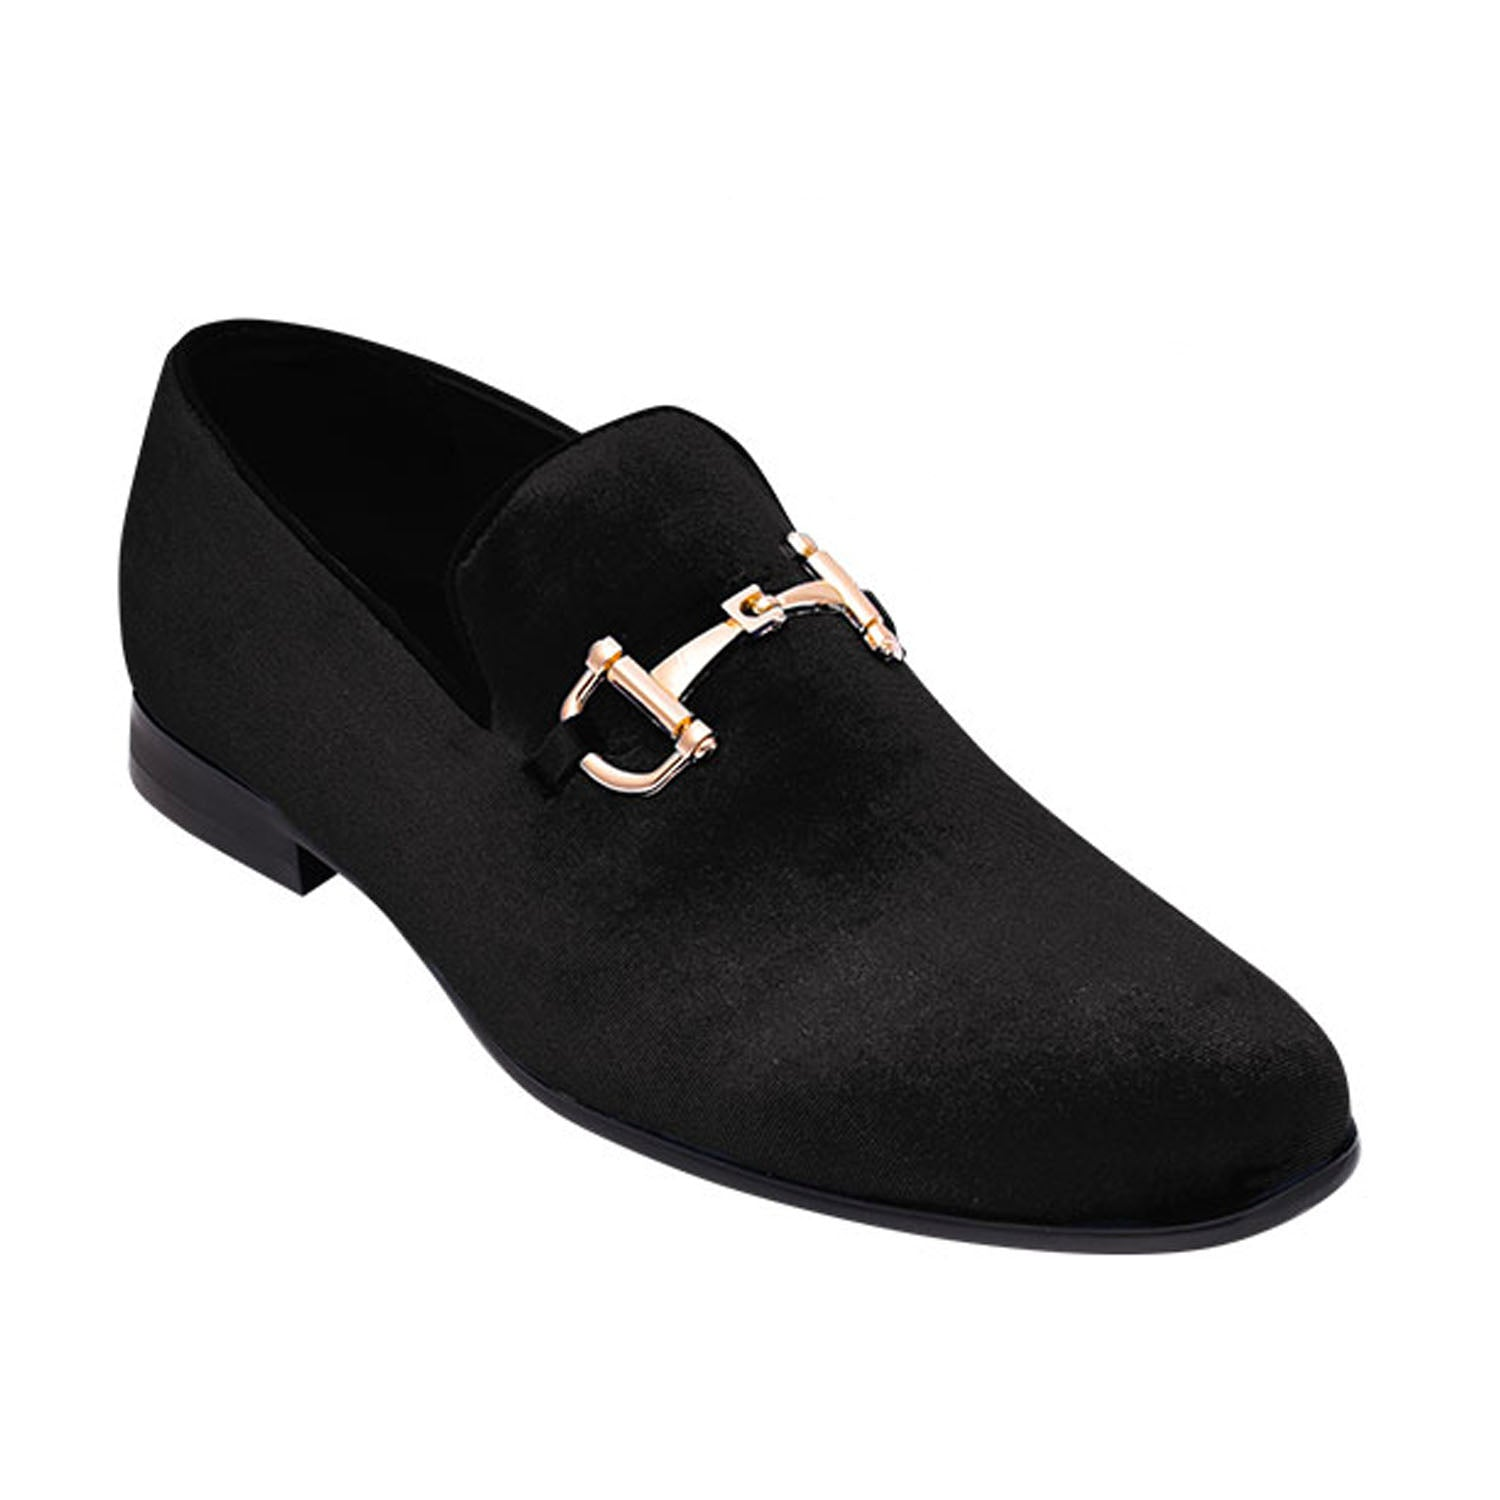 Black Loafer Shoe LF-9100